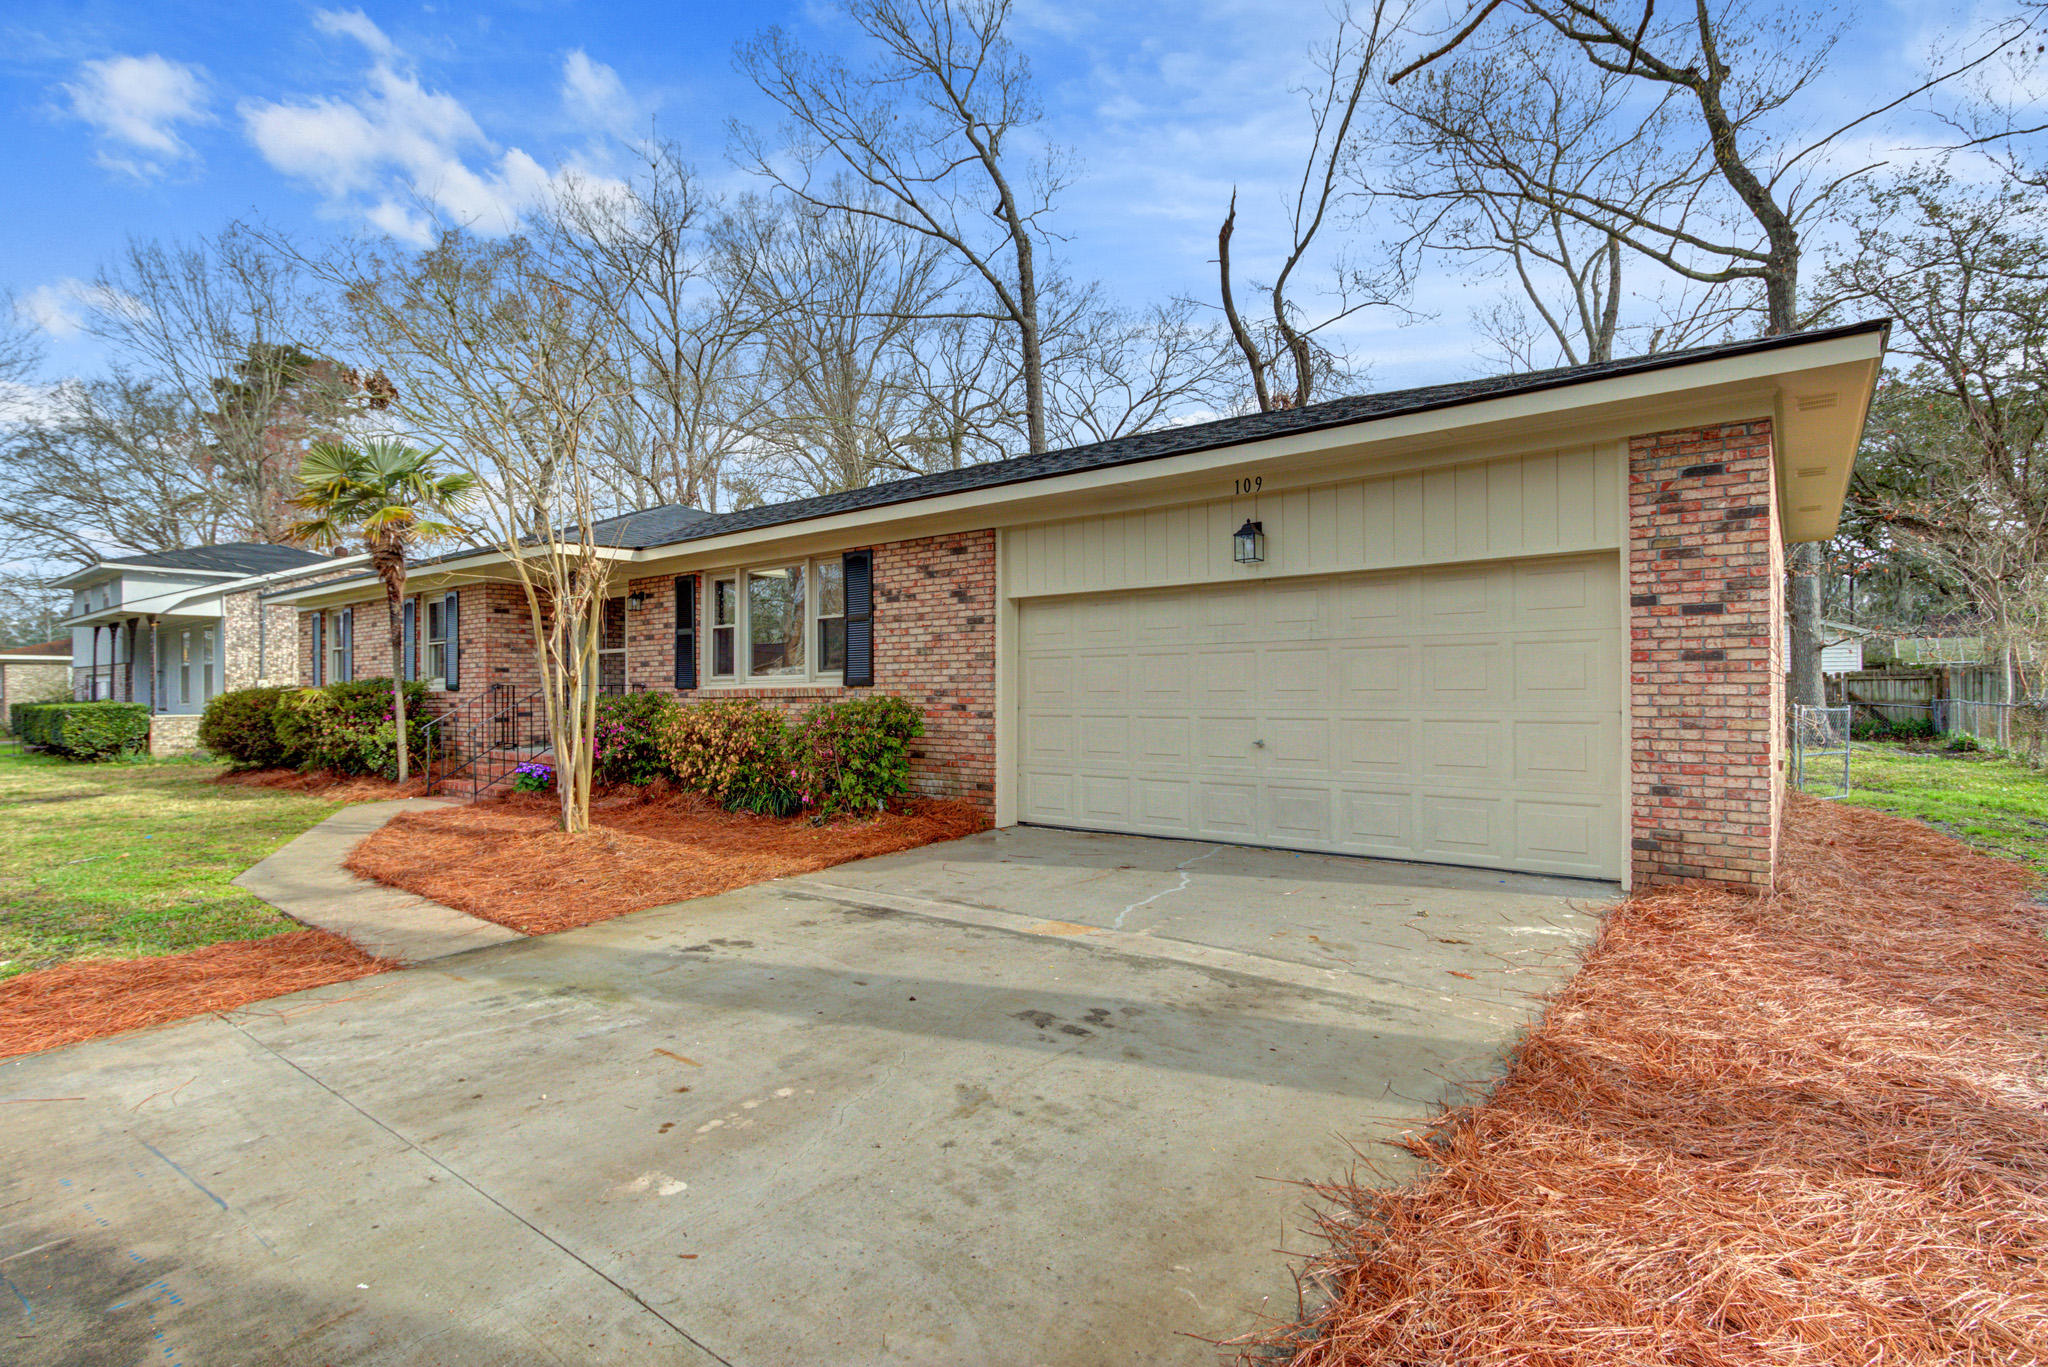 North Tranquil Acres Homes For Sale - 109 Monroe, Ladson, SC - 23